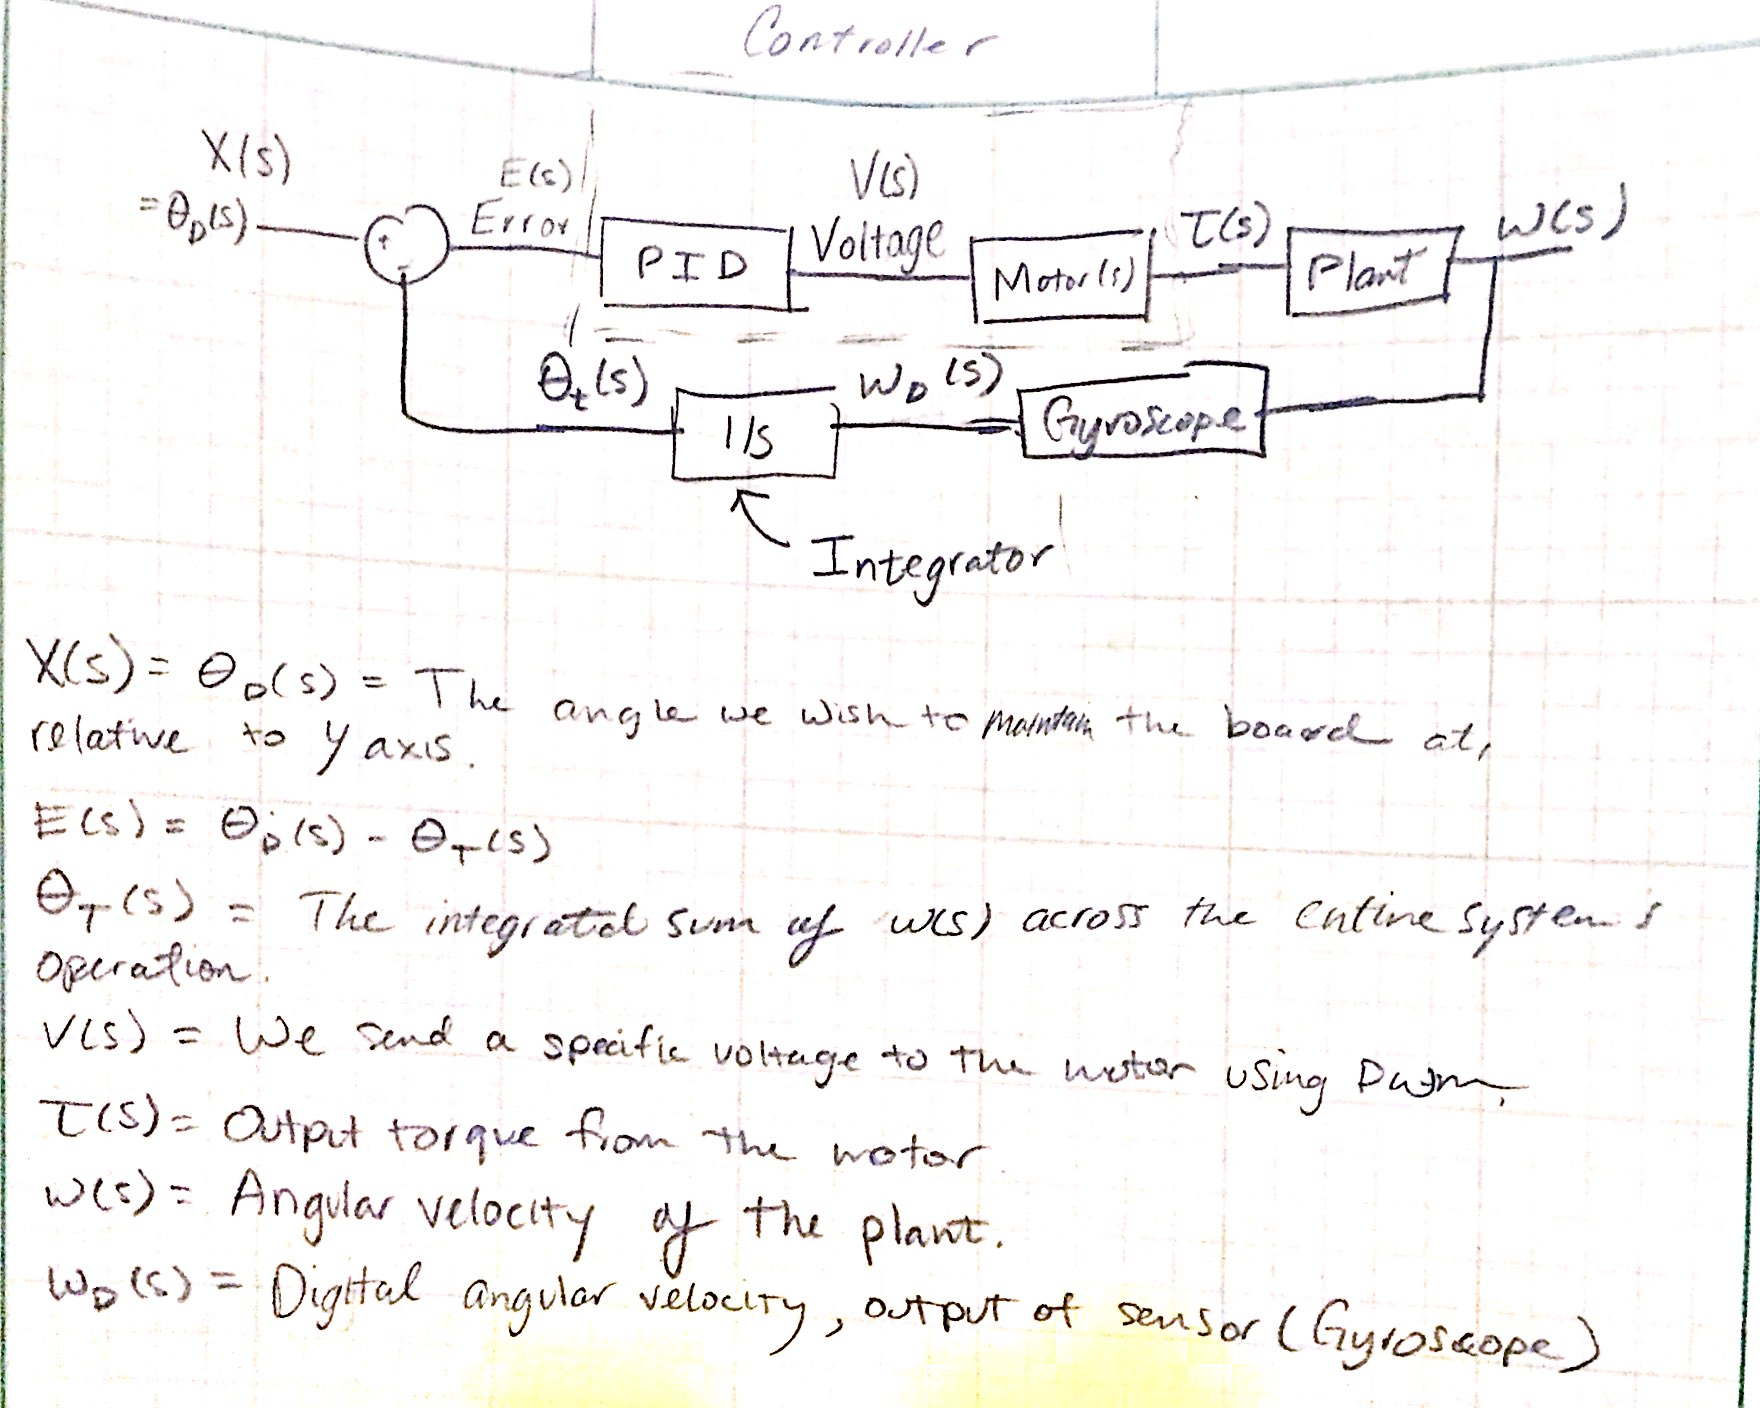 hight resolution of block diagram controller design we ll be using a standard pid controller to control the segway it ll be of the form kp kd s ki s in order to accurately